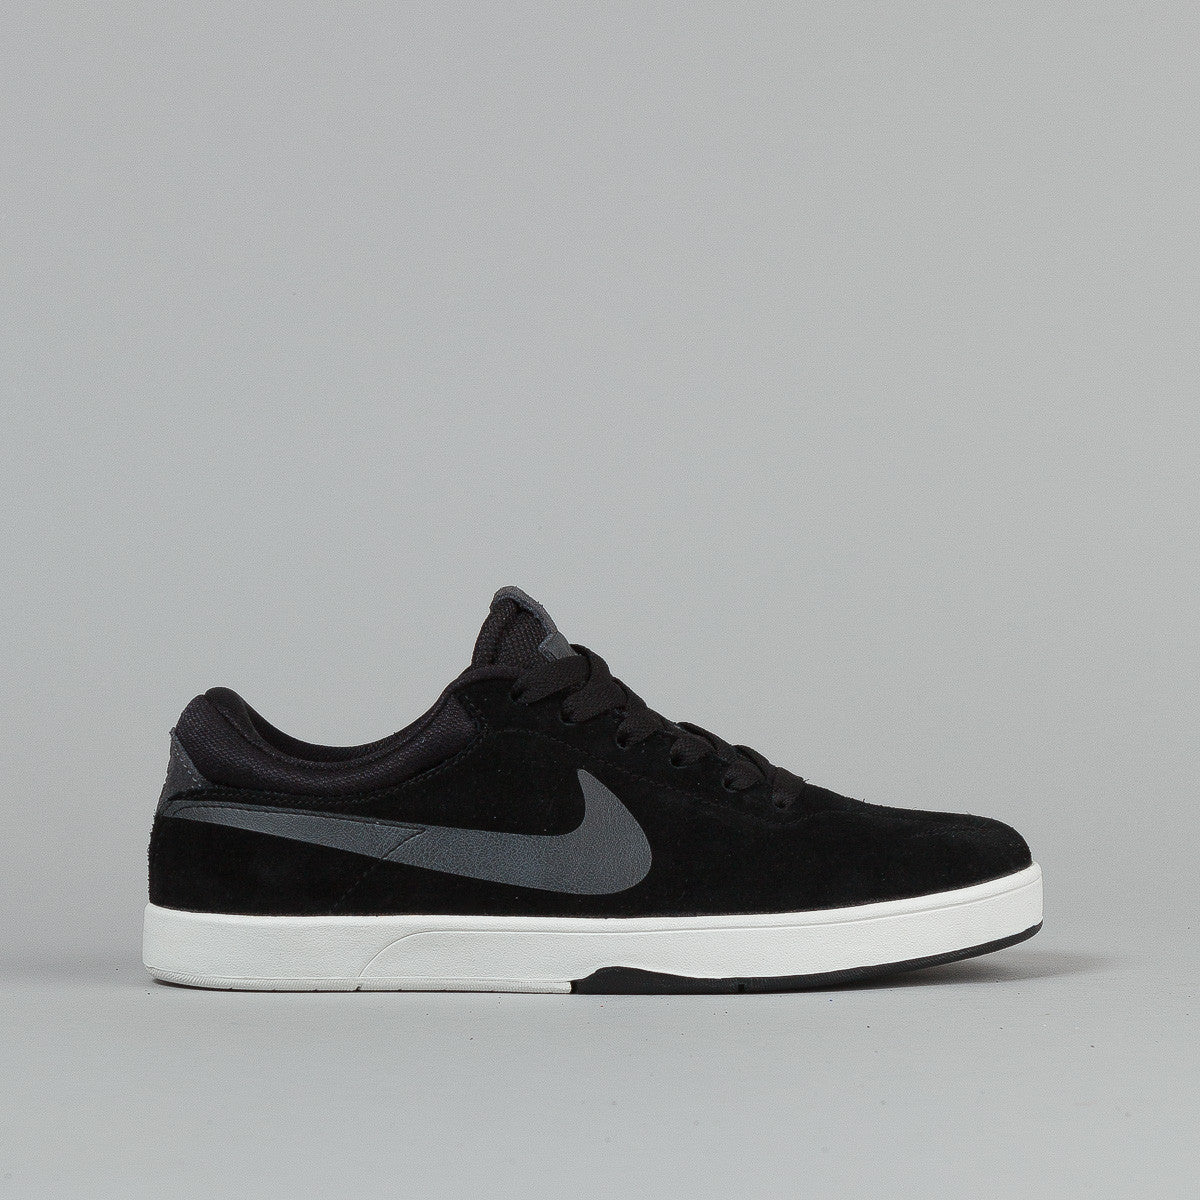 Nike SB Eric Koston 1 Black/Dark Grey